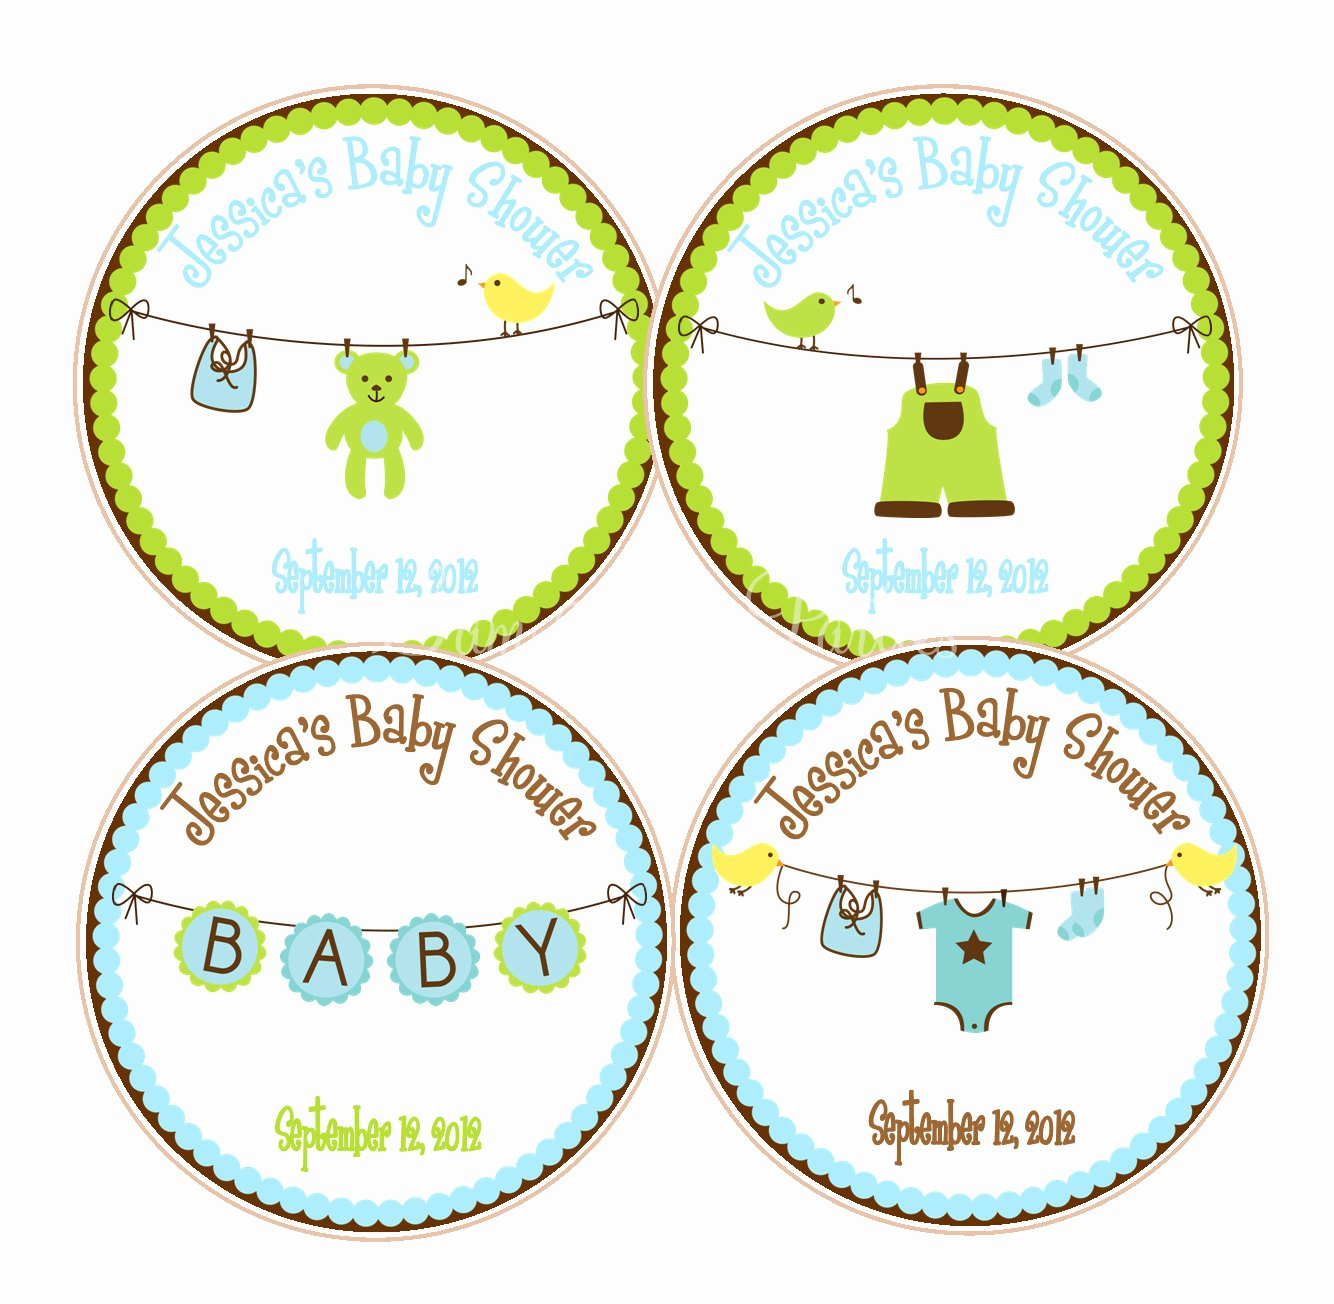 Free Printable Baby Shower Tags Awesome Cute Boy Baby Shower Favor Tags Baby Showers or 1st Birthday